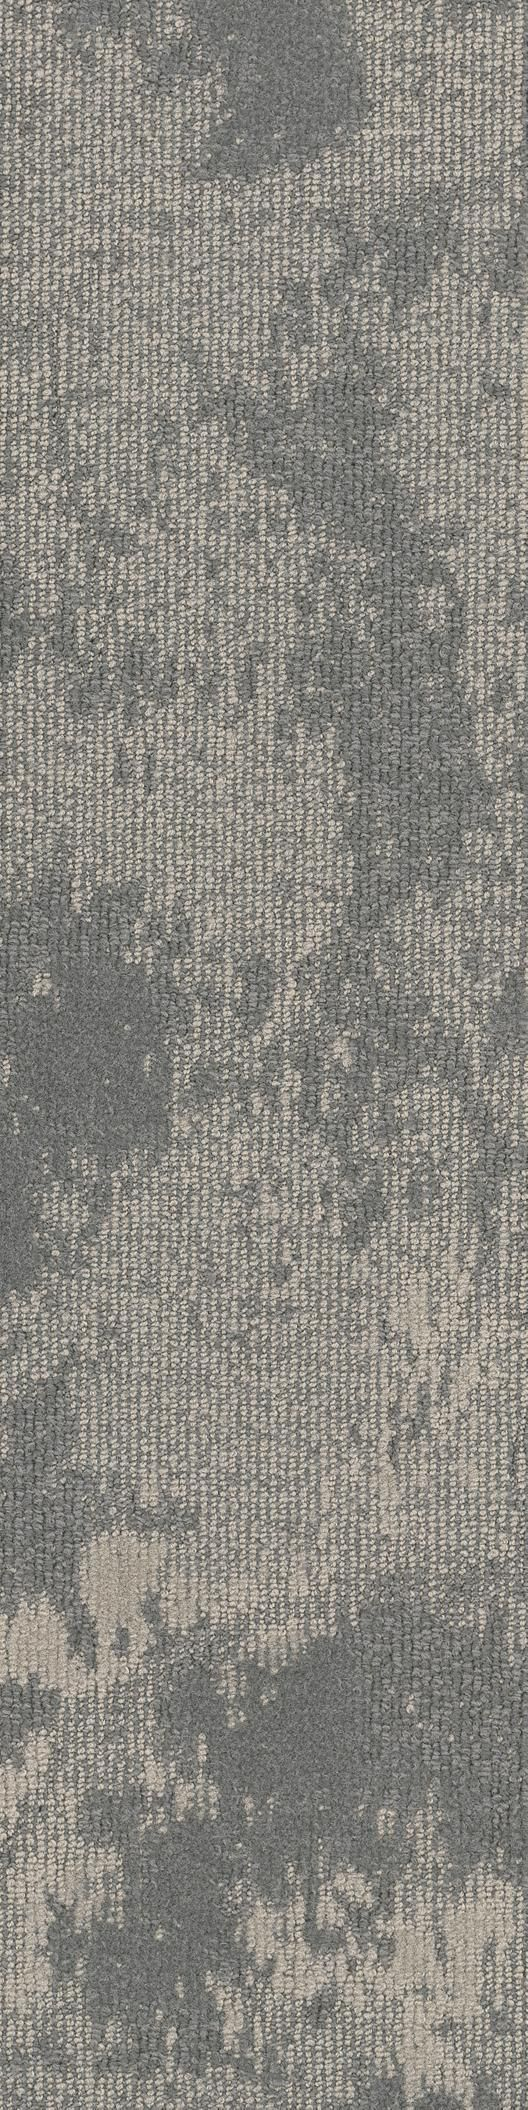 explore tile | 5T143 | Shaw Contract Group Commercial Carpet and Flooring